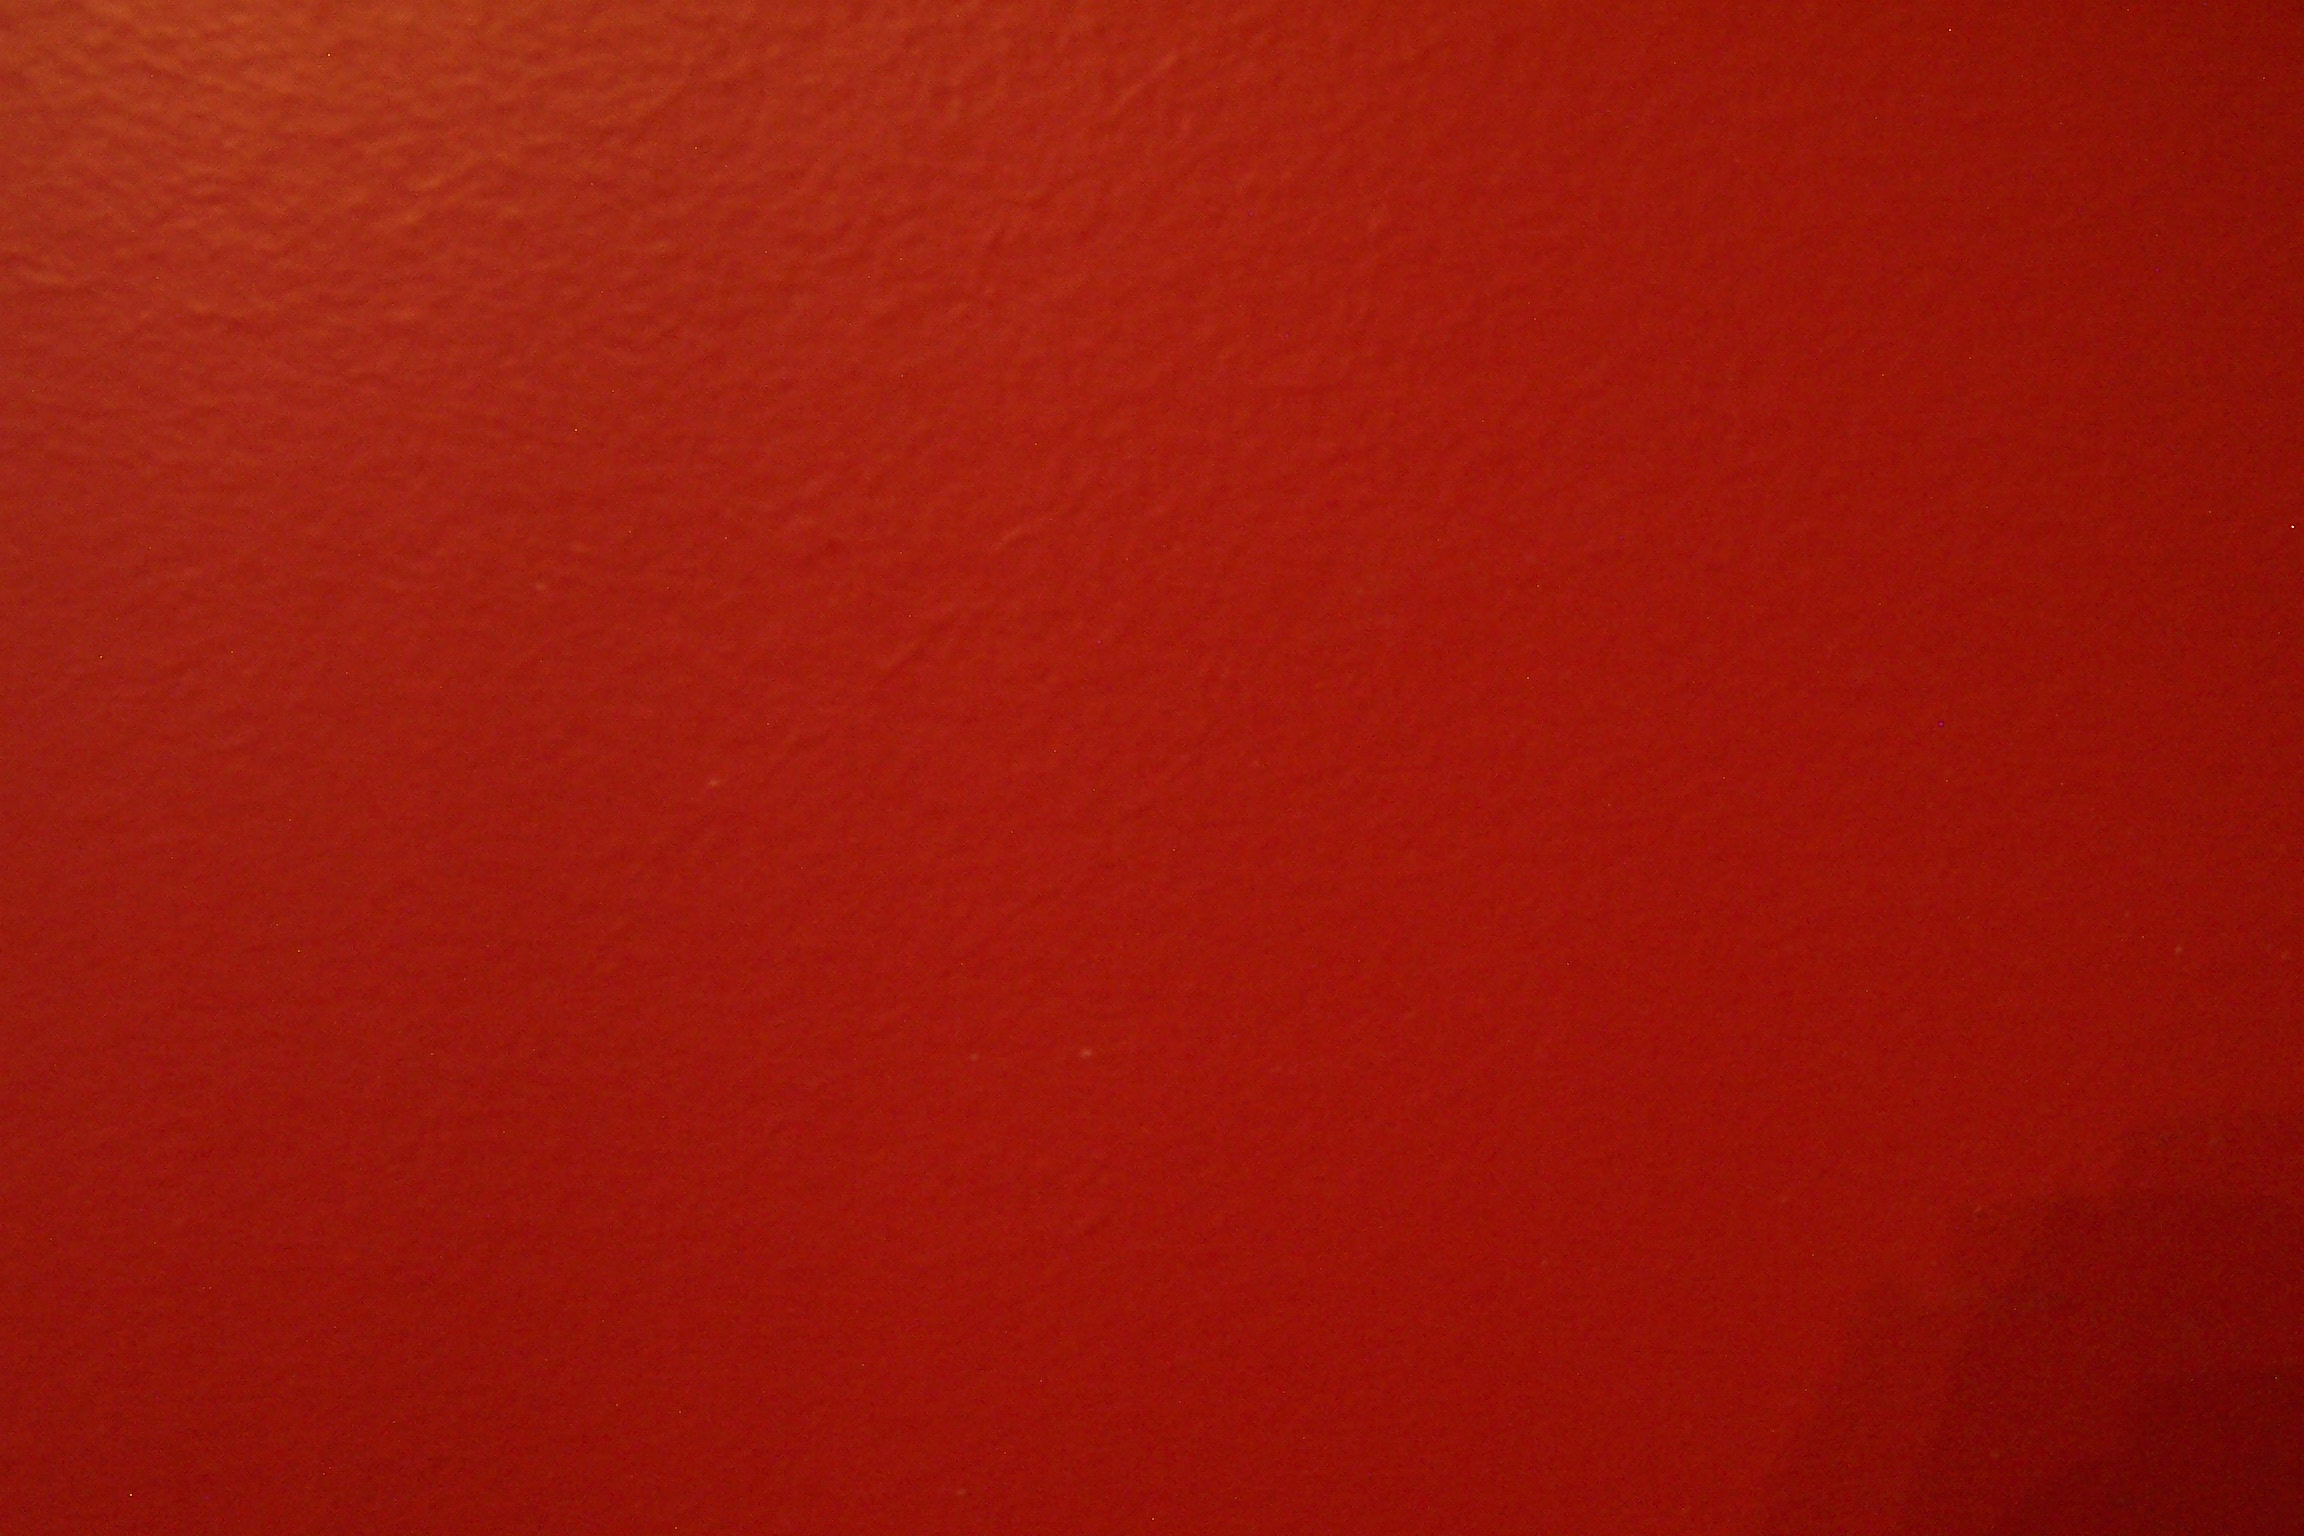 Red Wall Paint Texture By Jojostock On Deviantart